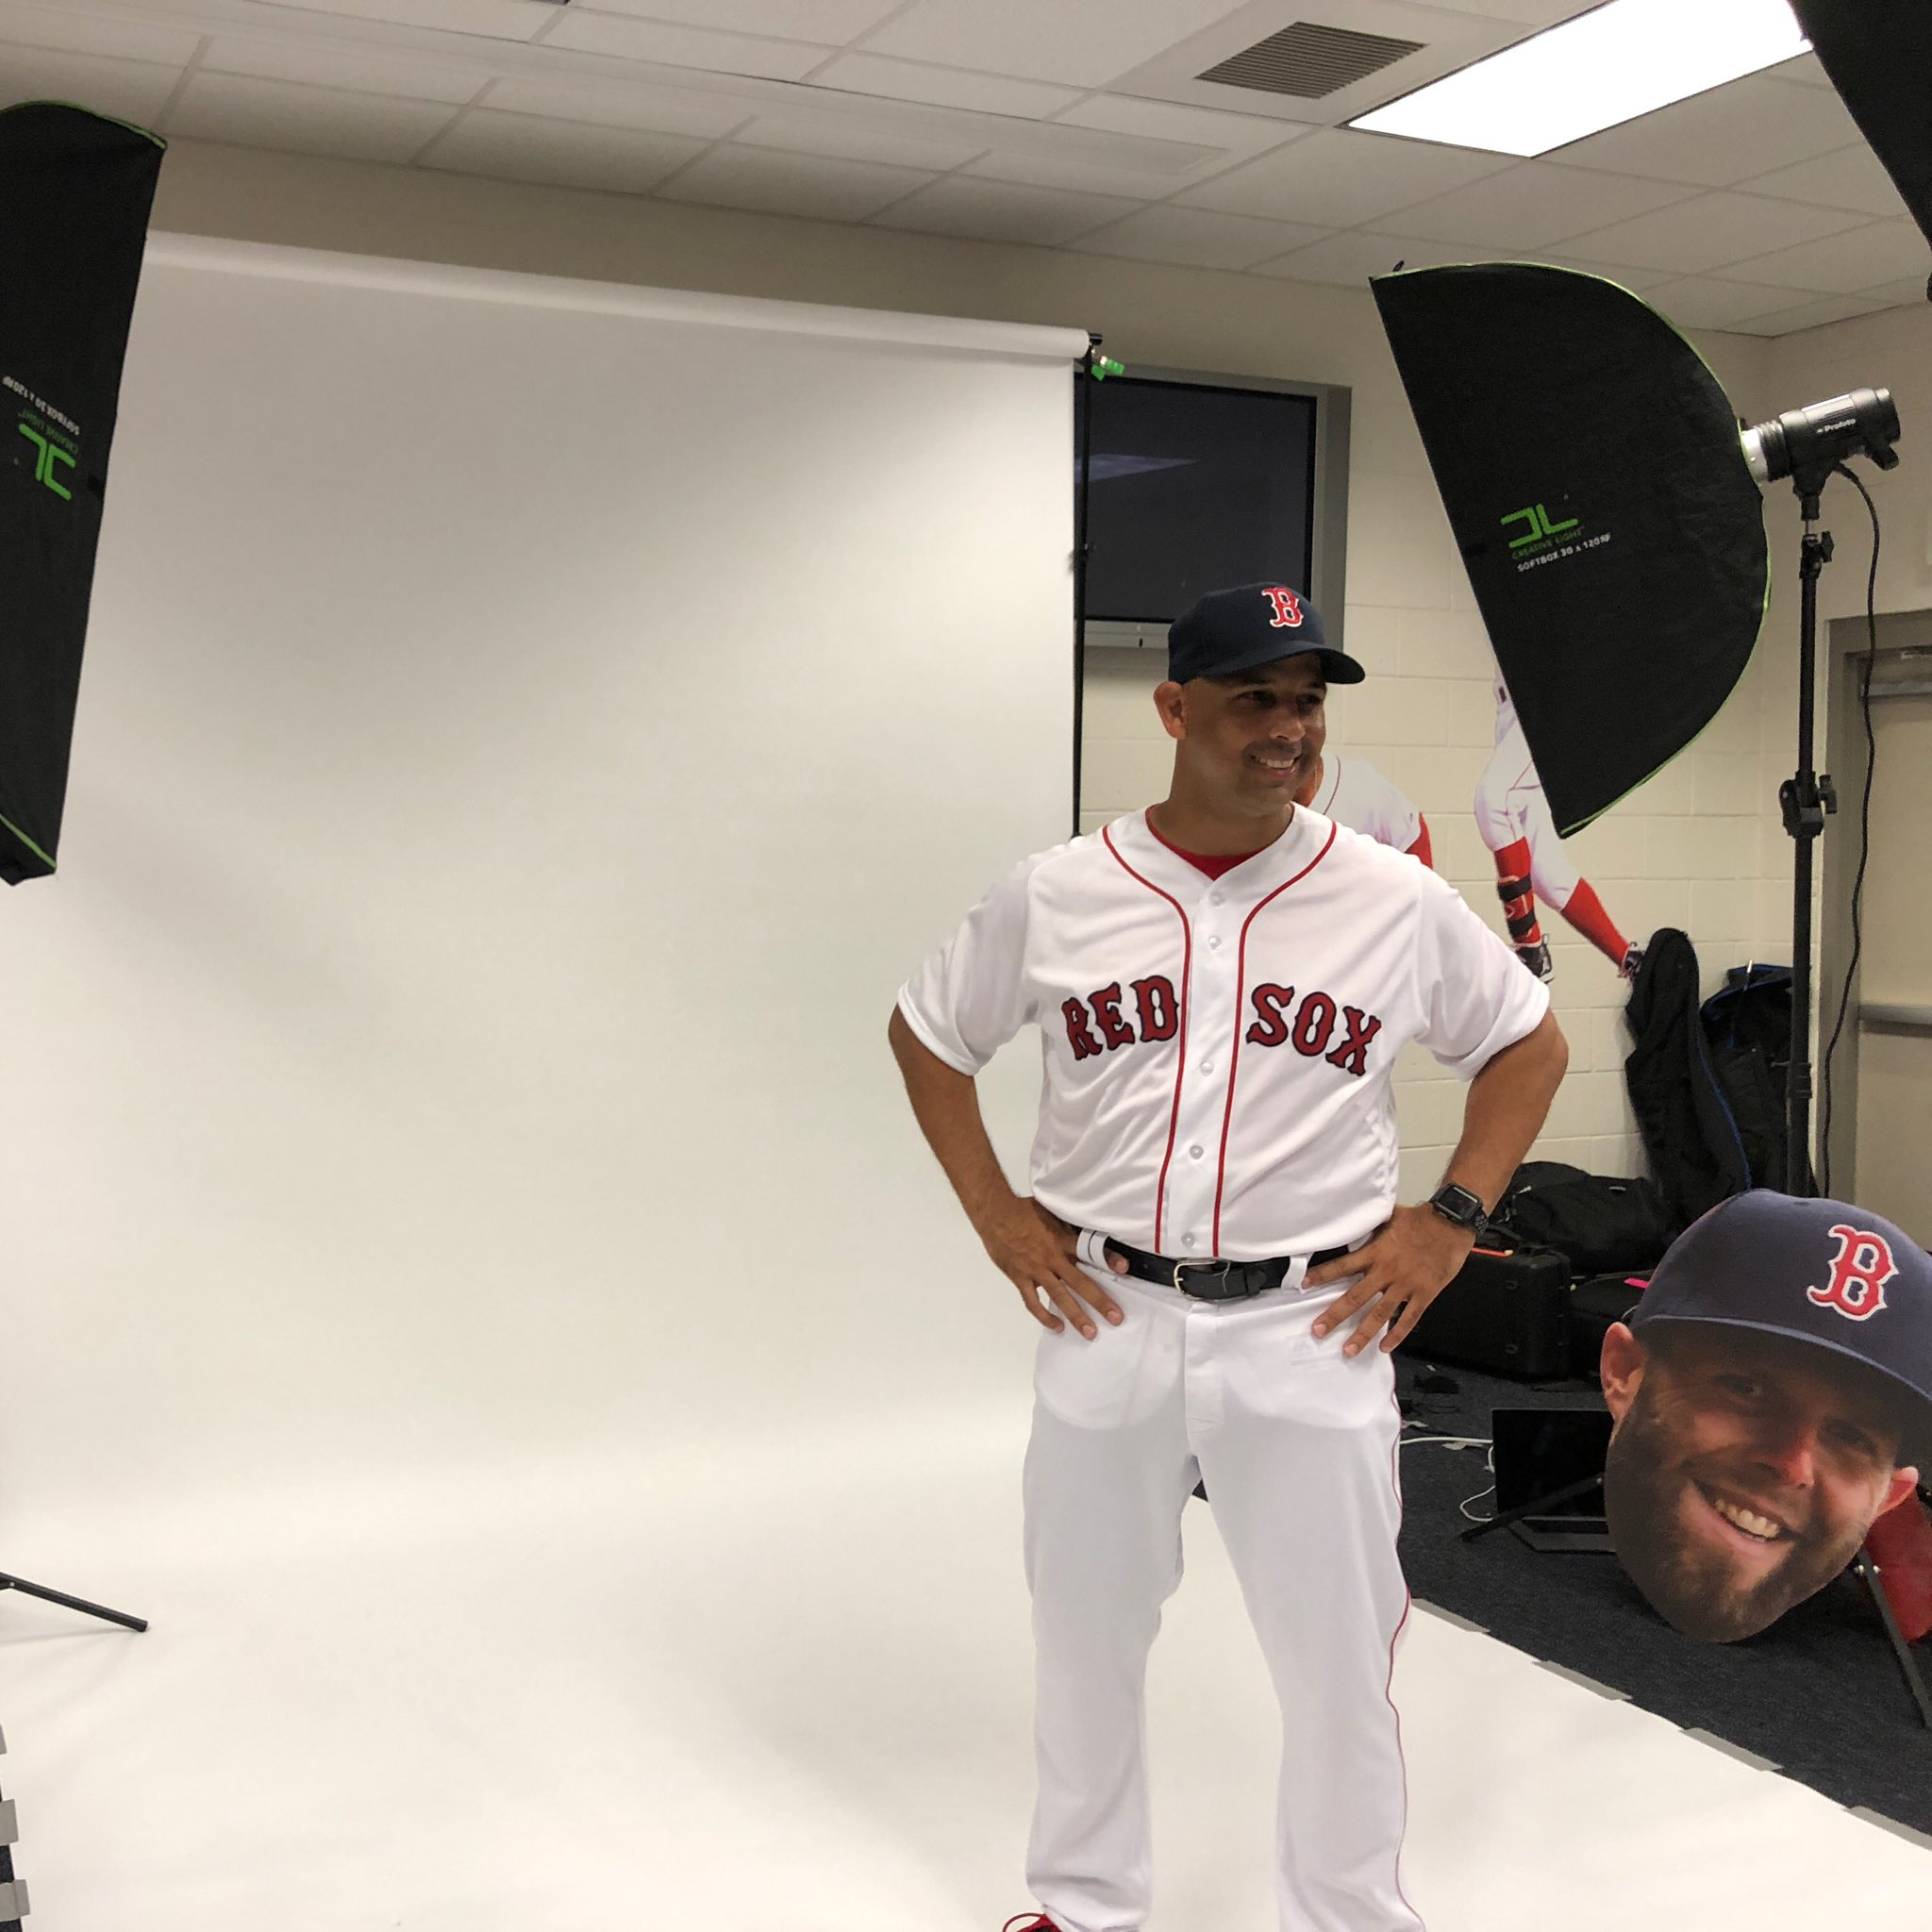 .@ac13alex making his way through #PhotoDay! �� https://t.co/HXSPTJKcOy